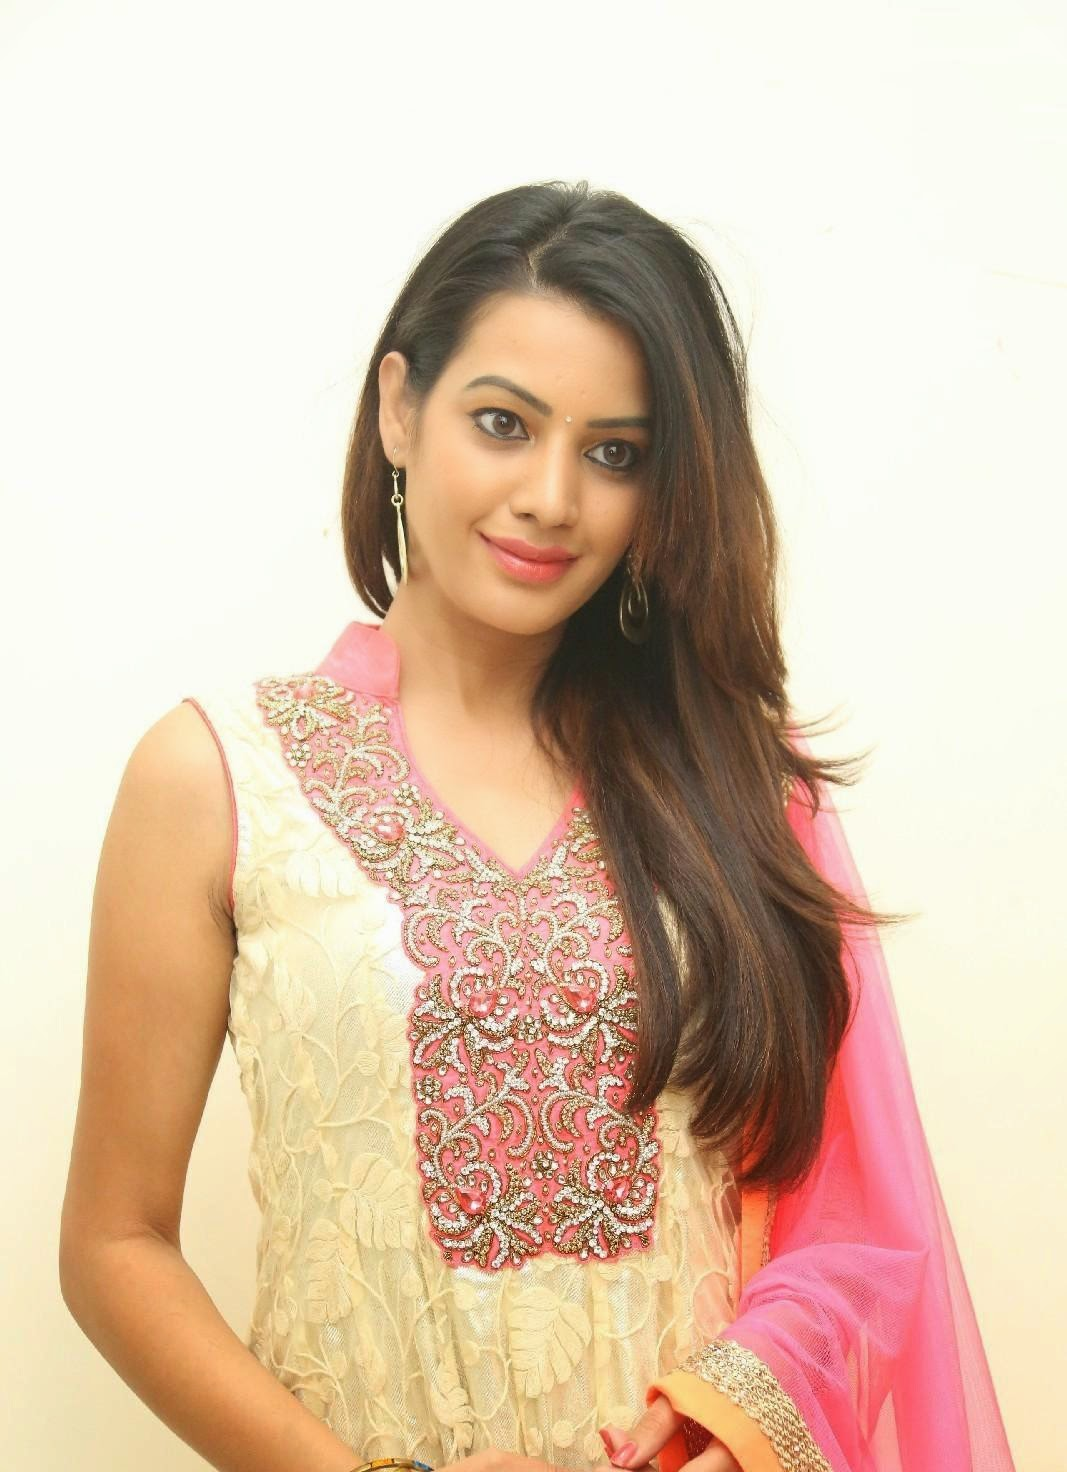 Deeksha panth stills